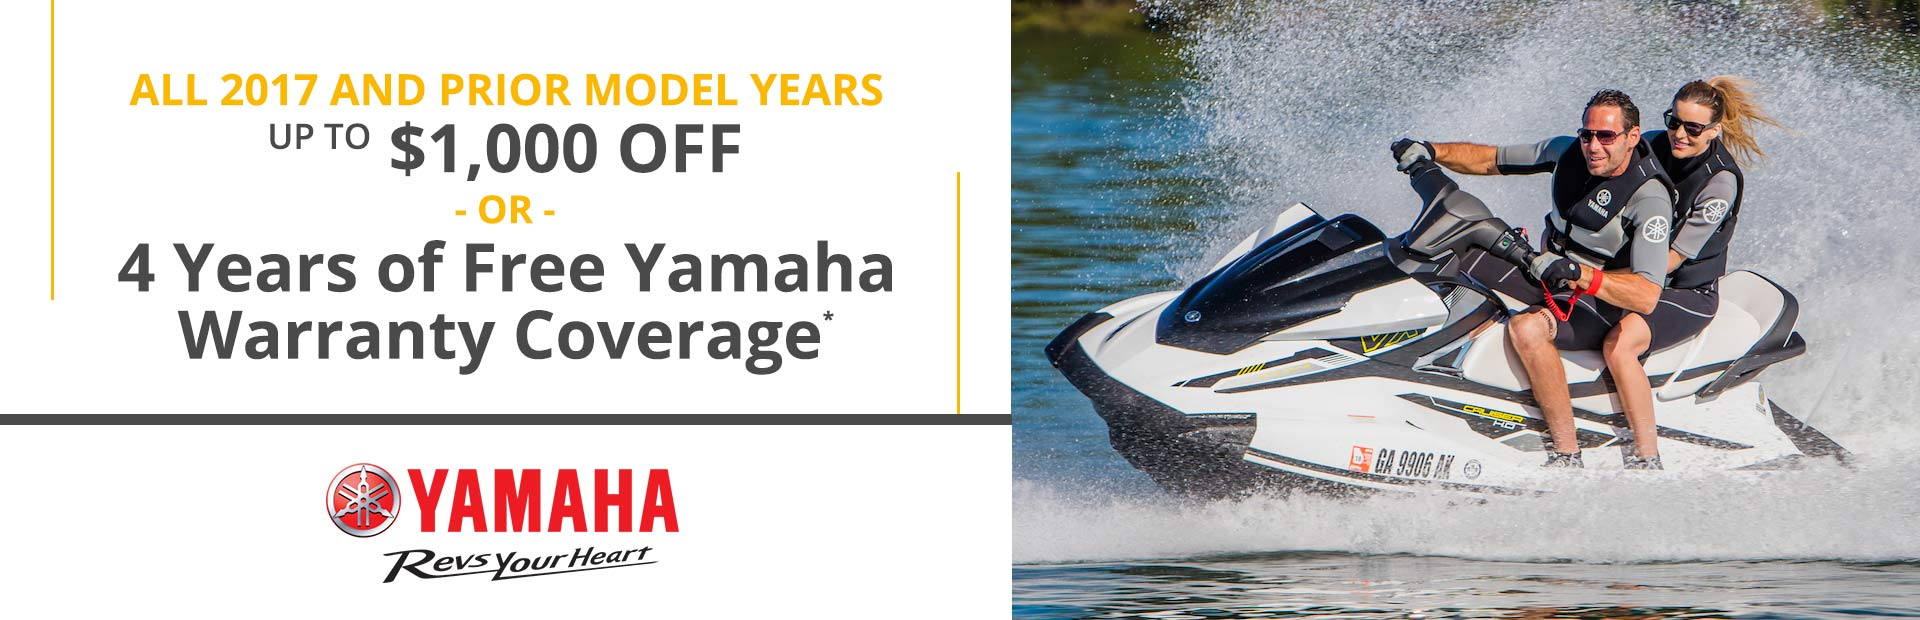 Yamaha: Up to $1,000 Off or 4 Years of Warranty Coverage